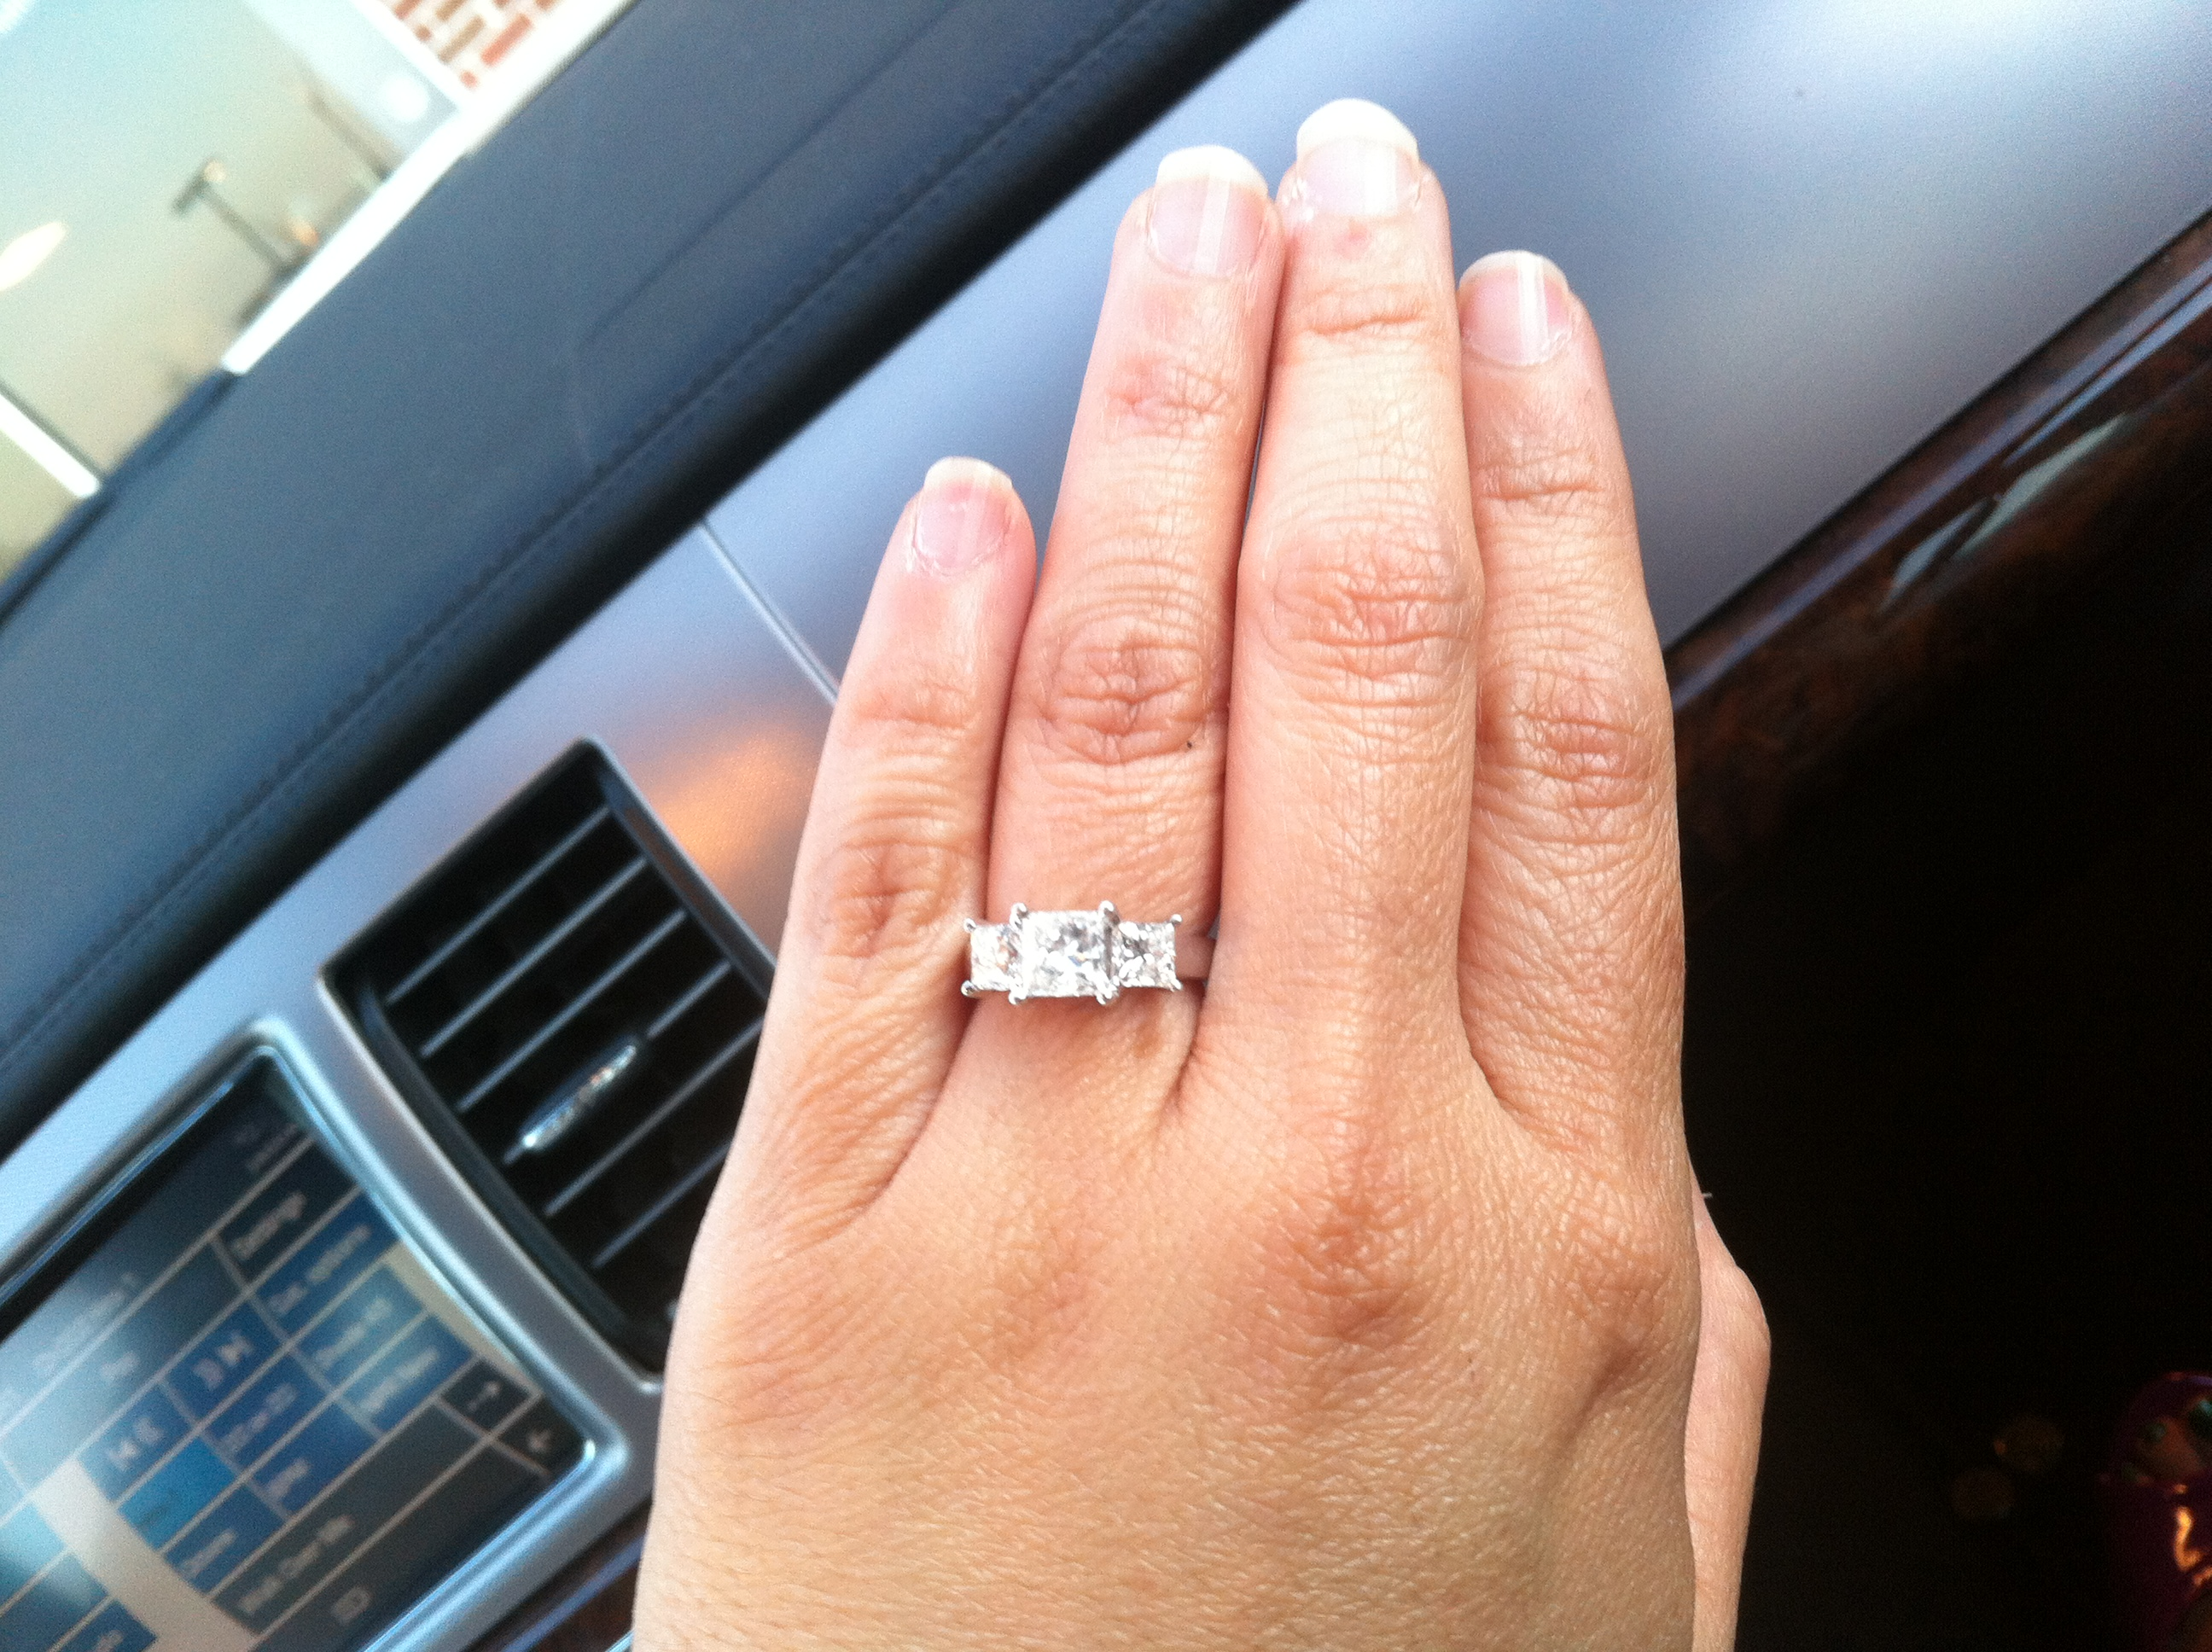 Engagement rings and wedding bands what is a reasonable price and